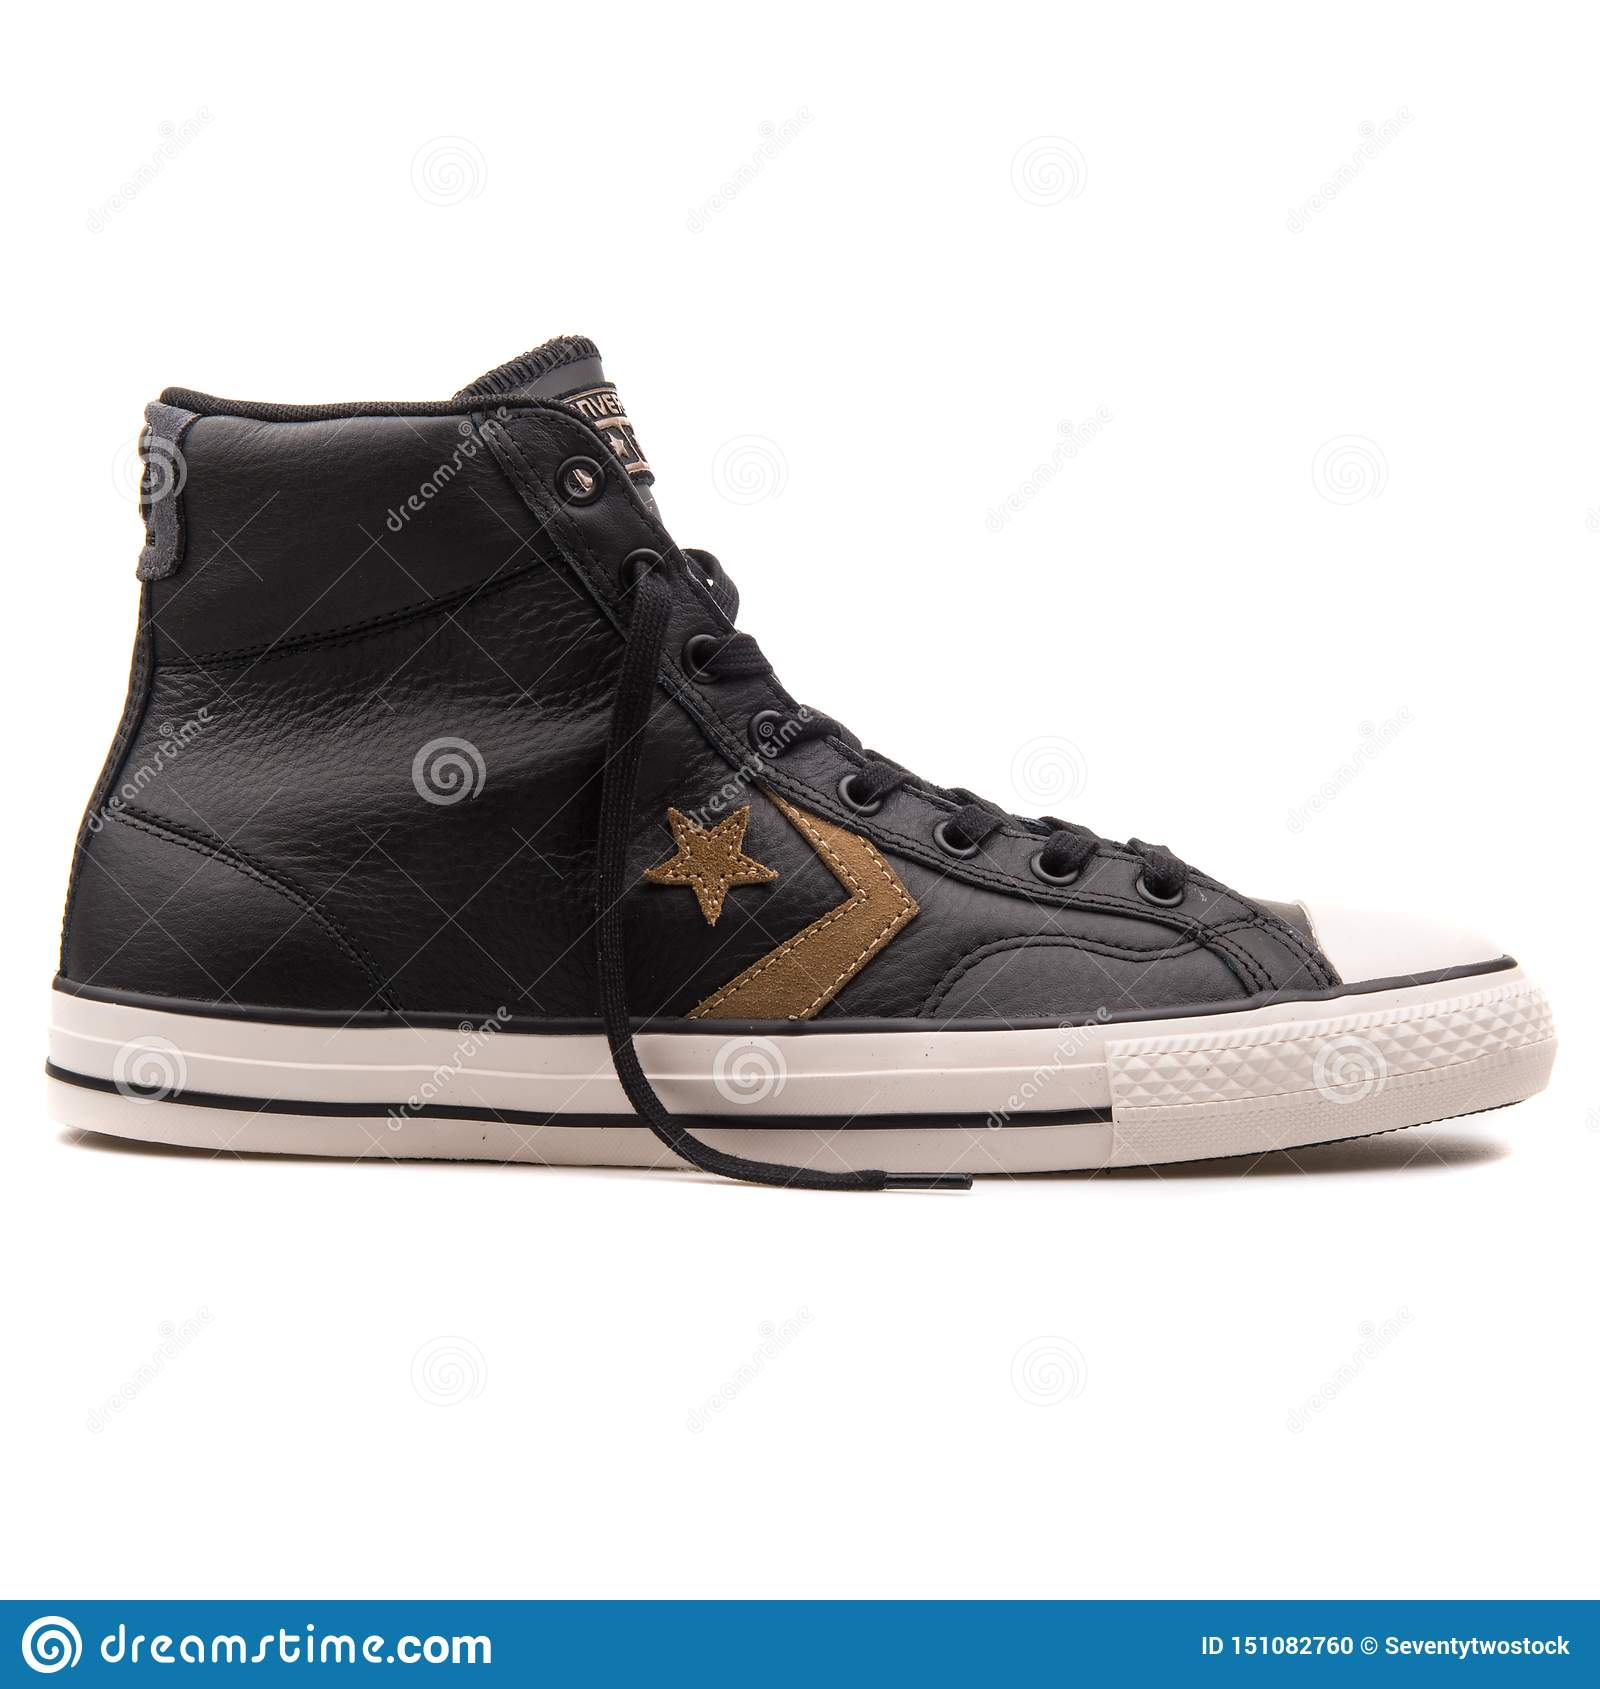 Converse Star Player High Black Sneaker Editorial Image - Image of ...